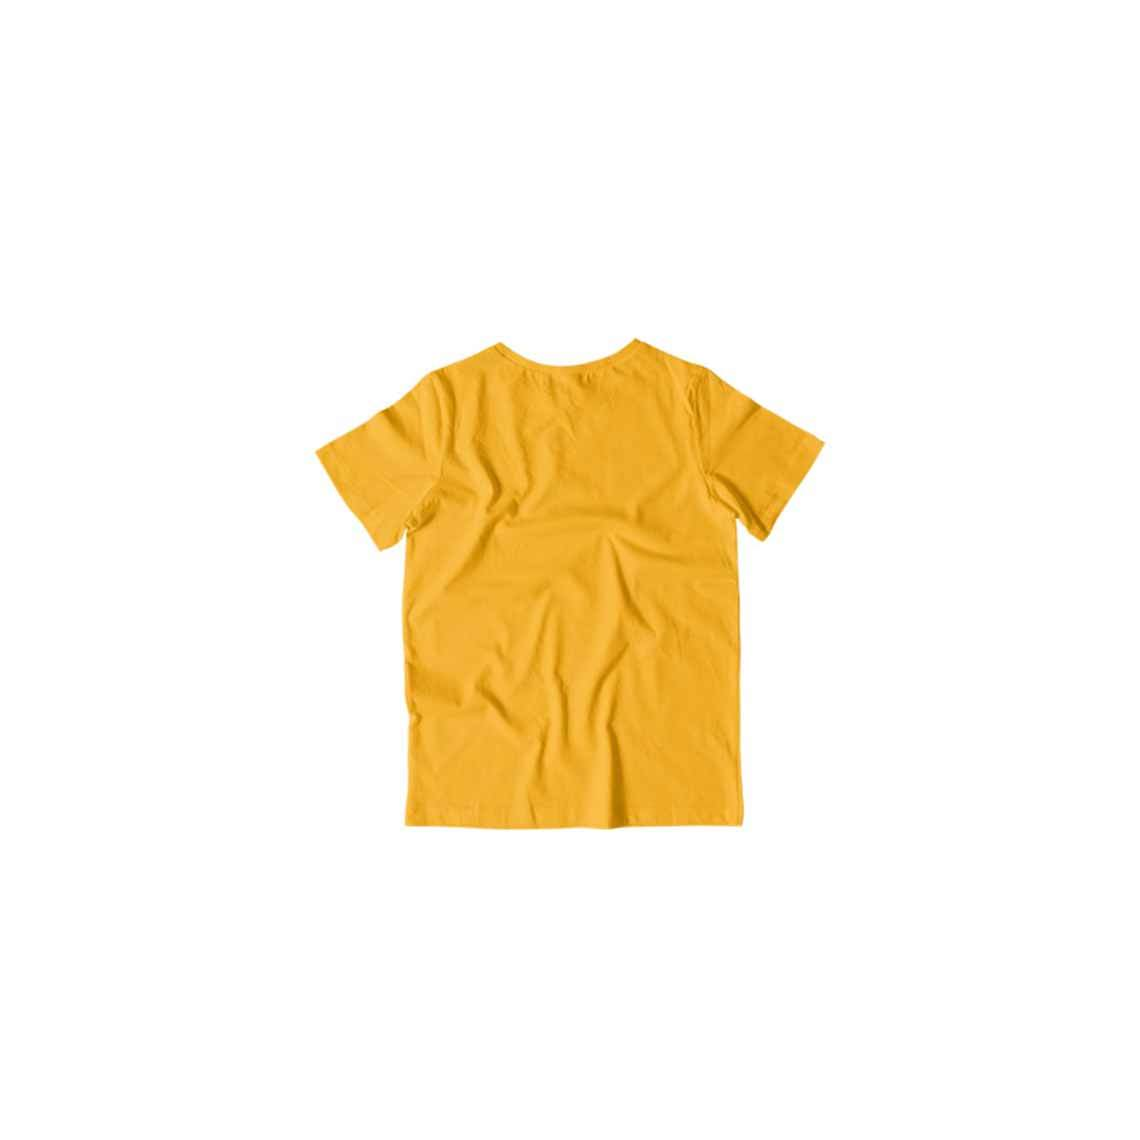 Toddler's Basics - Golden Yellow Half Sleeves Round Neck T-shirt